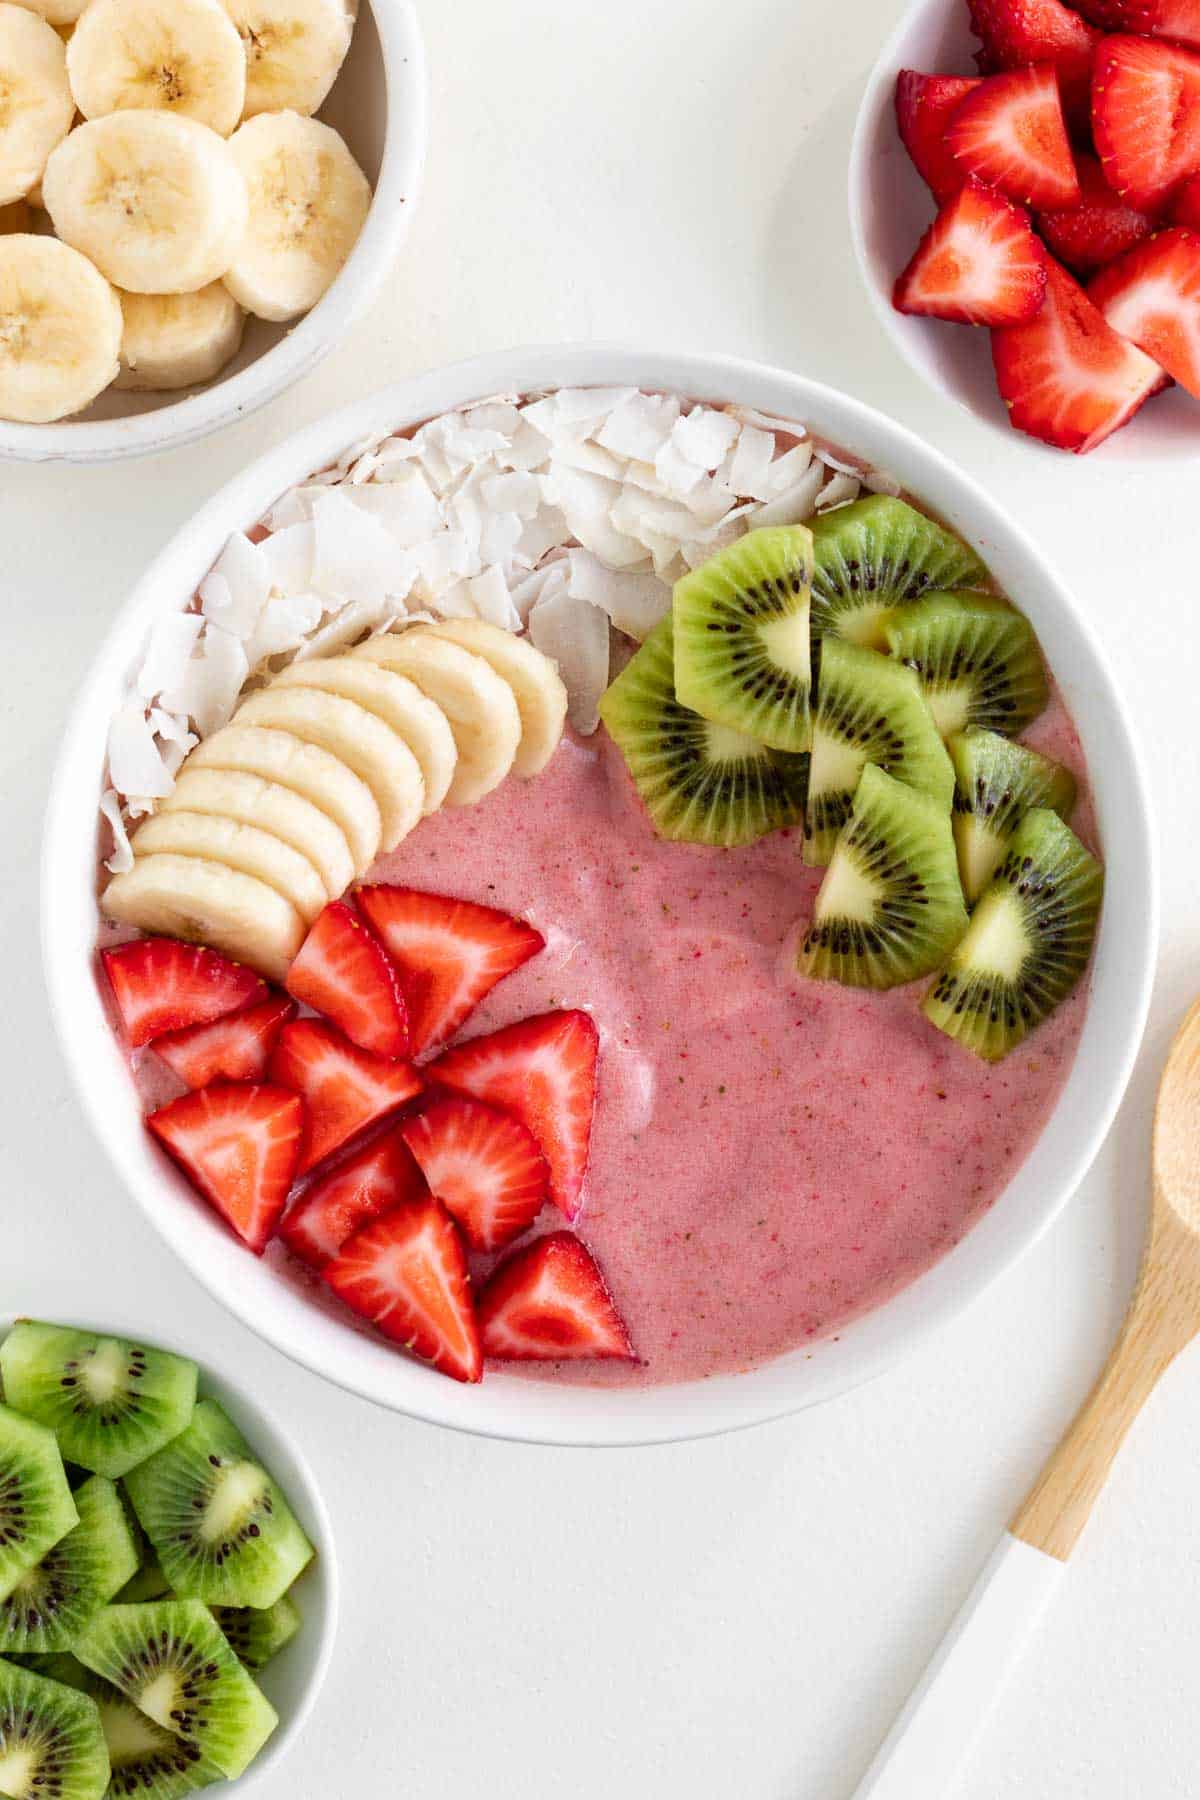 a strawberry kiwi smoothie bowl surrounded by bowls of sliced banana, strawberries, and kiwi fruit